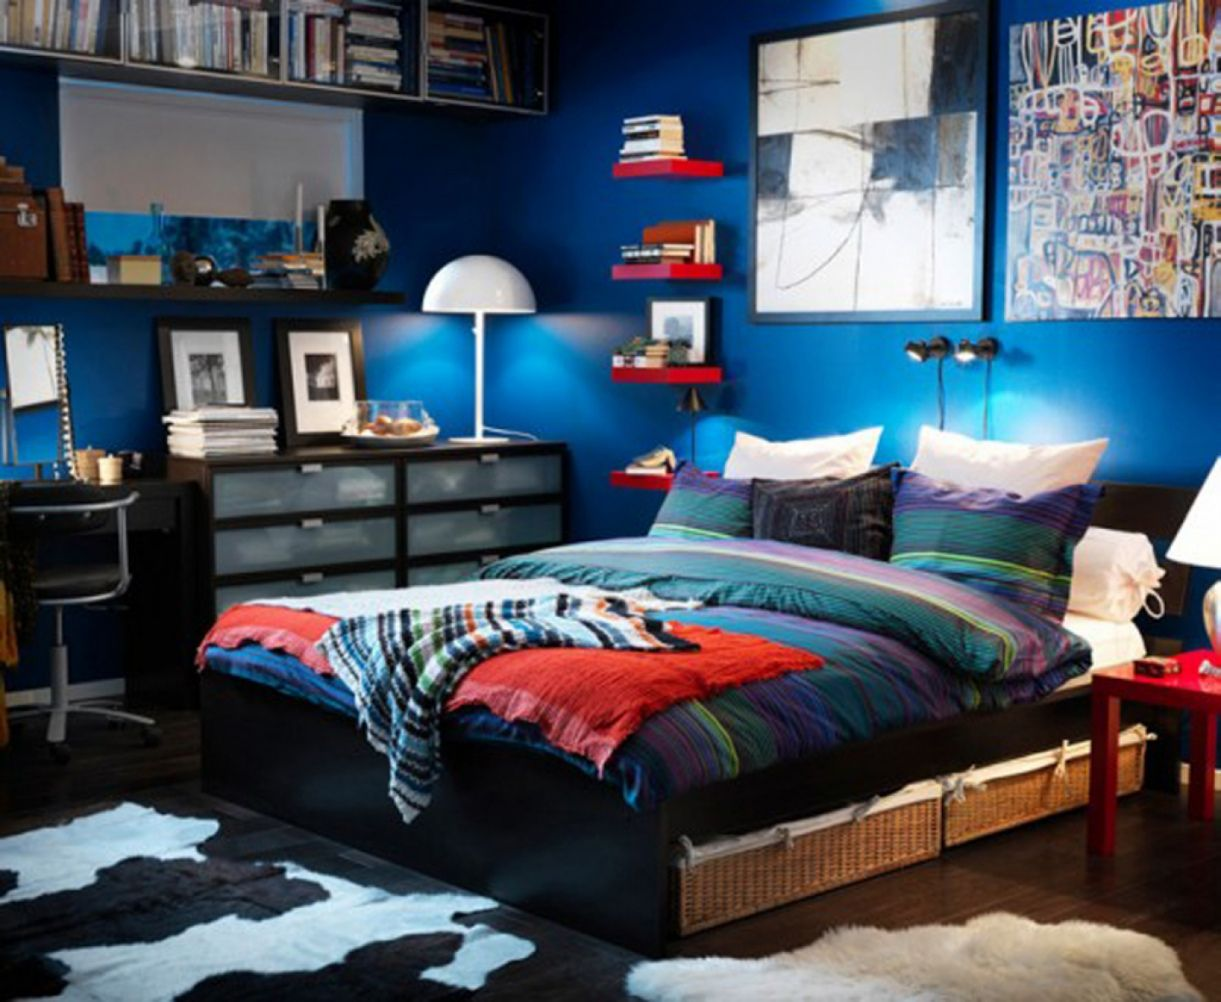 ikea bedroom furniture for teenagers. Ikea Bedroom Furniture For Teenagers - Interior House Paint Colors Check More At Http:/ E